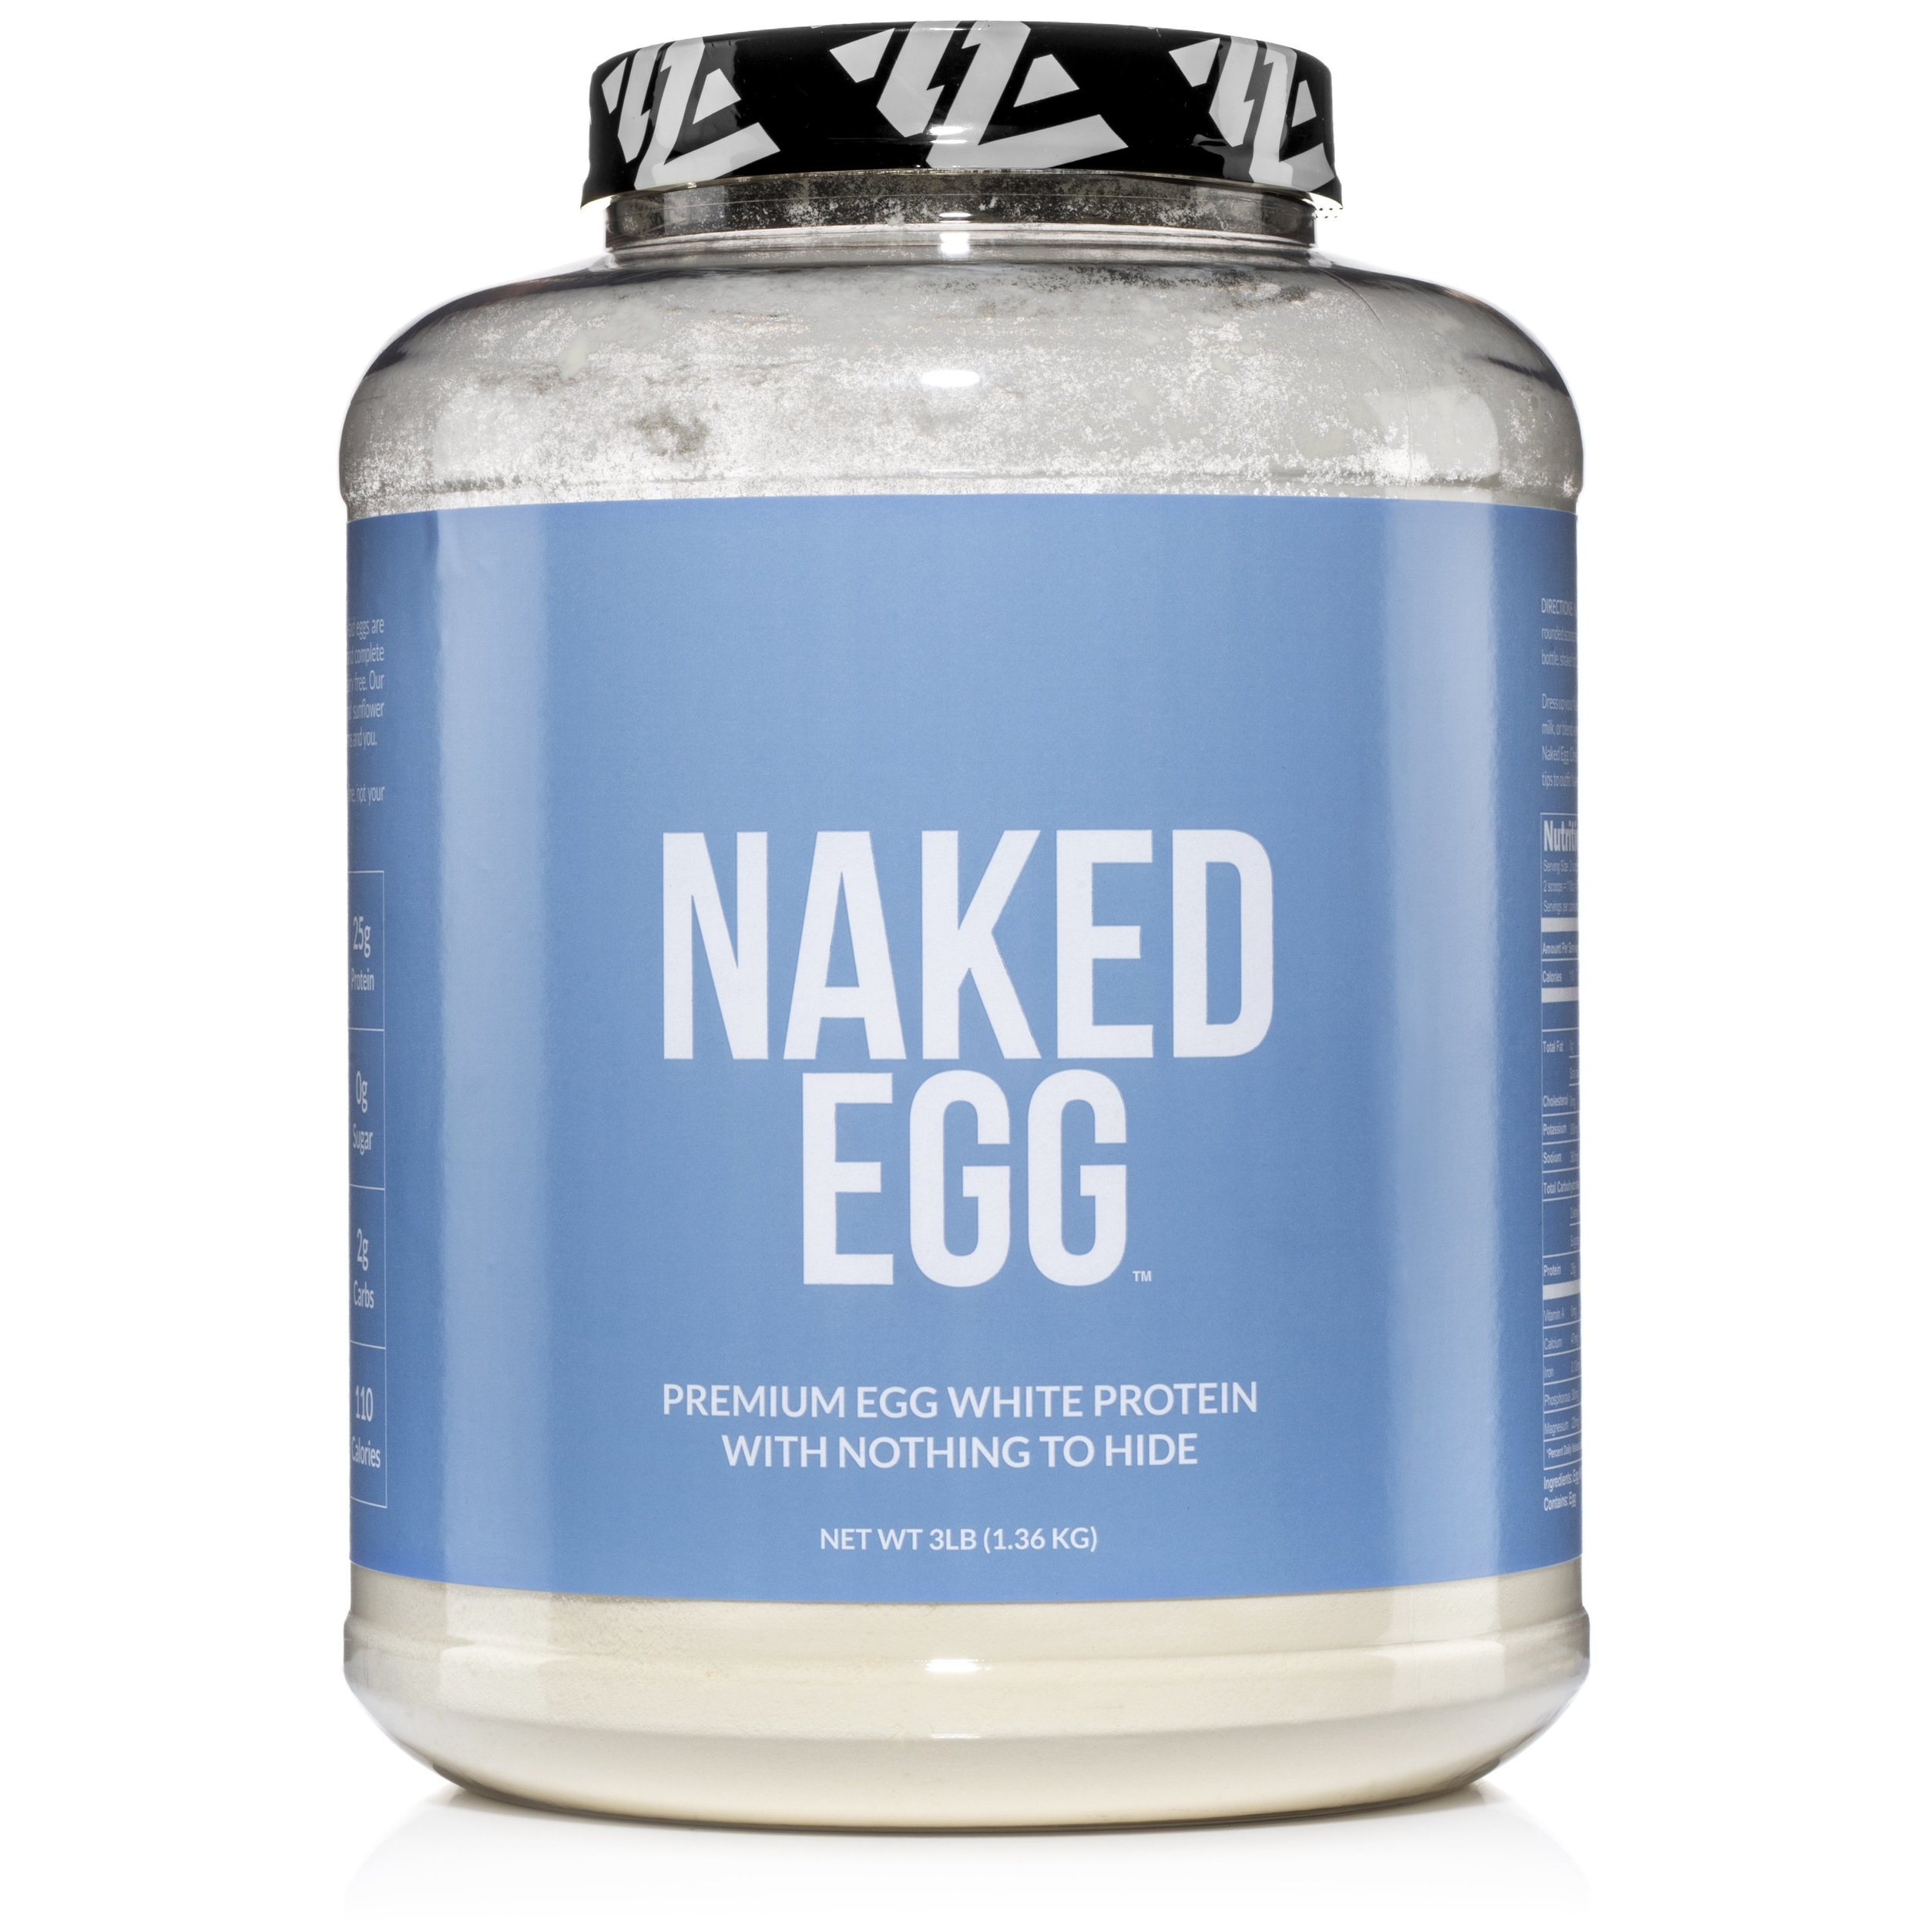 NAKED Egg White Protein Powder - - Sourced Exclusively from US Farms- Eggs sourced exclusively from US farms and processed in under a day to maintain highest nutritional value- Excellent Paleo protein source with no additives.- Dairy-free; gluten-free; soy-free; & non-GMO▶️ to choose a flavor, click on one of the options below:🥚 Unflavored🌱 Vanilla🍫 Chocolate